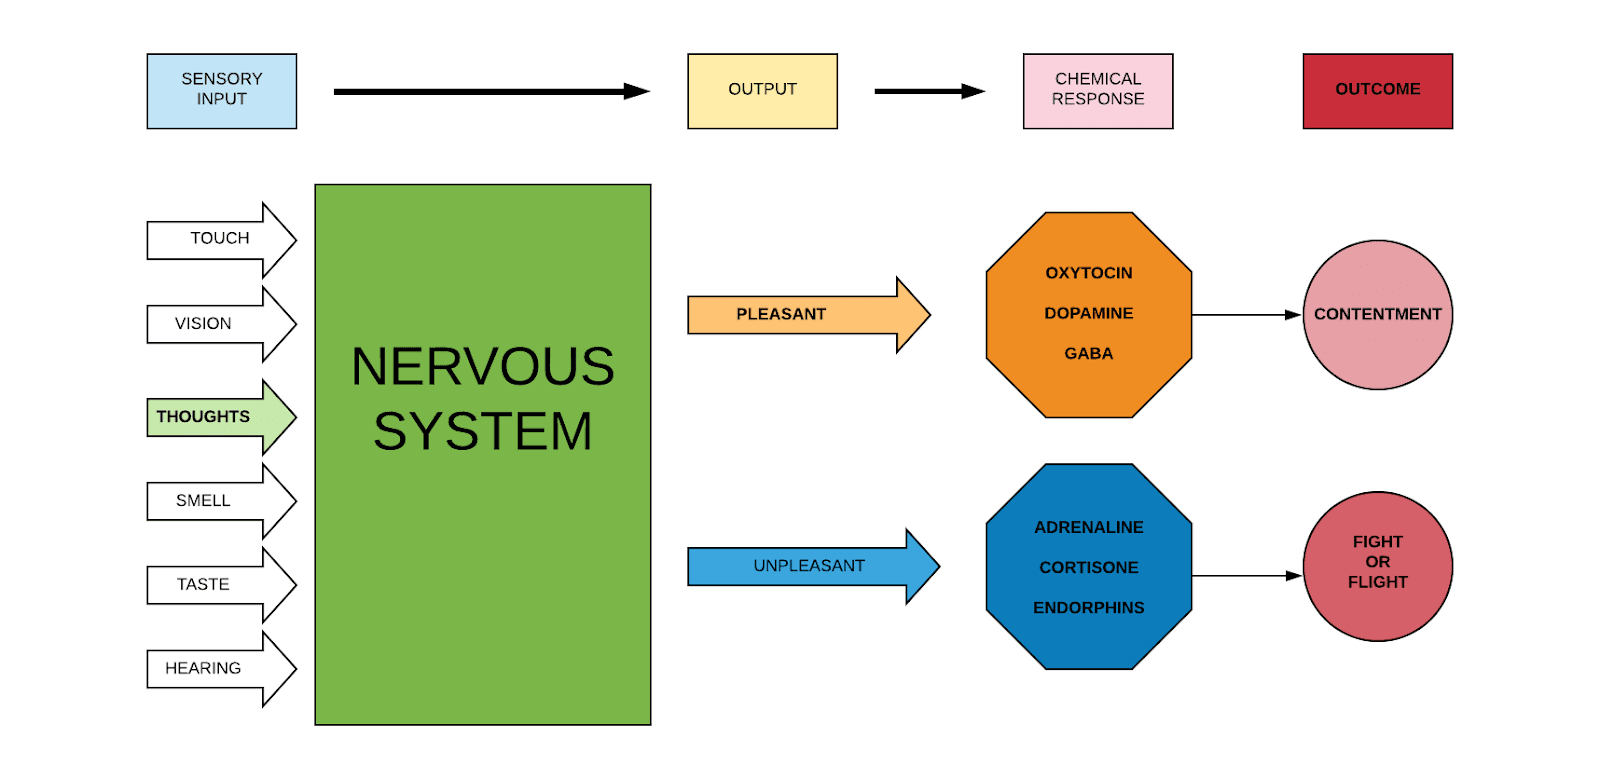 Stress - fight response diagram